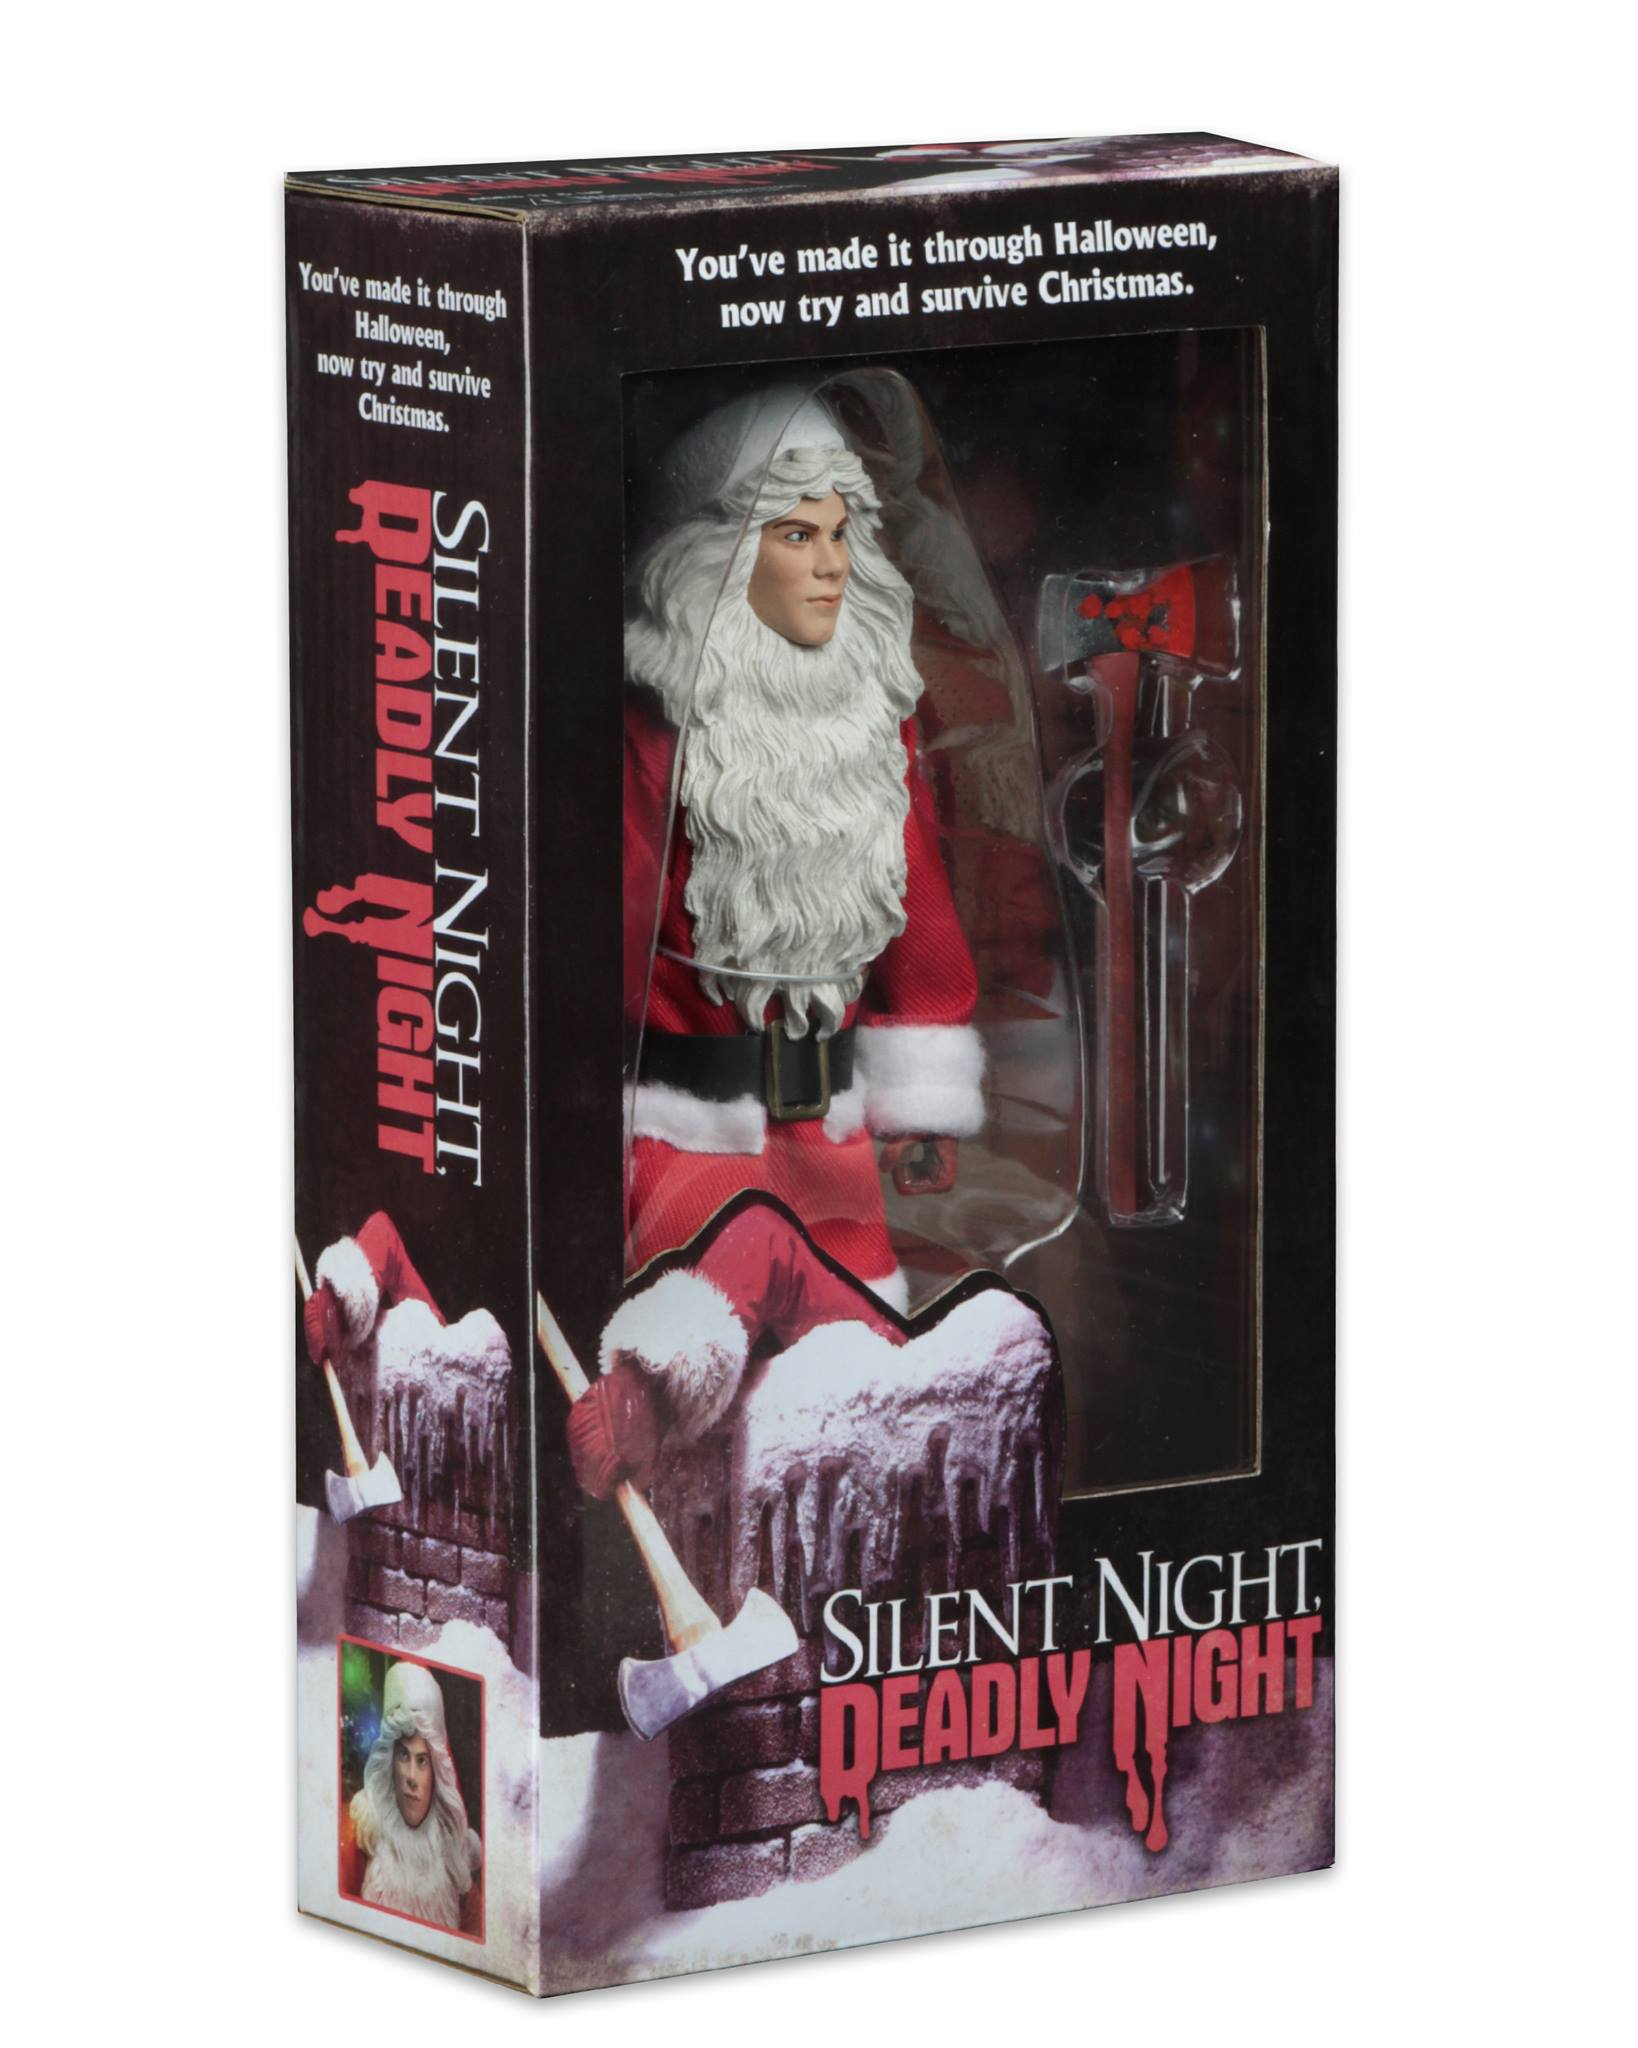 Silent Night, Deadly Night Billy Figure In-Packaging - The Toyark - News